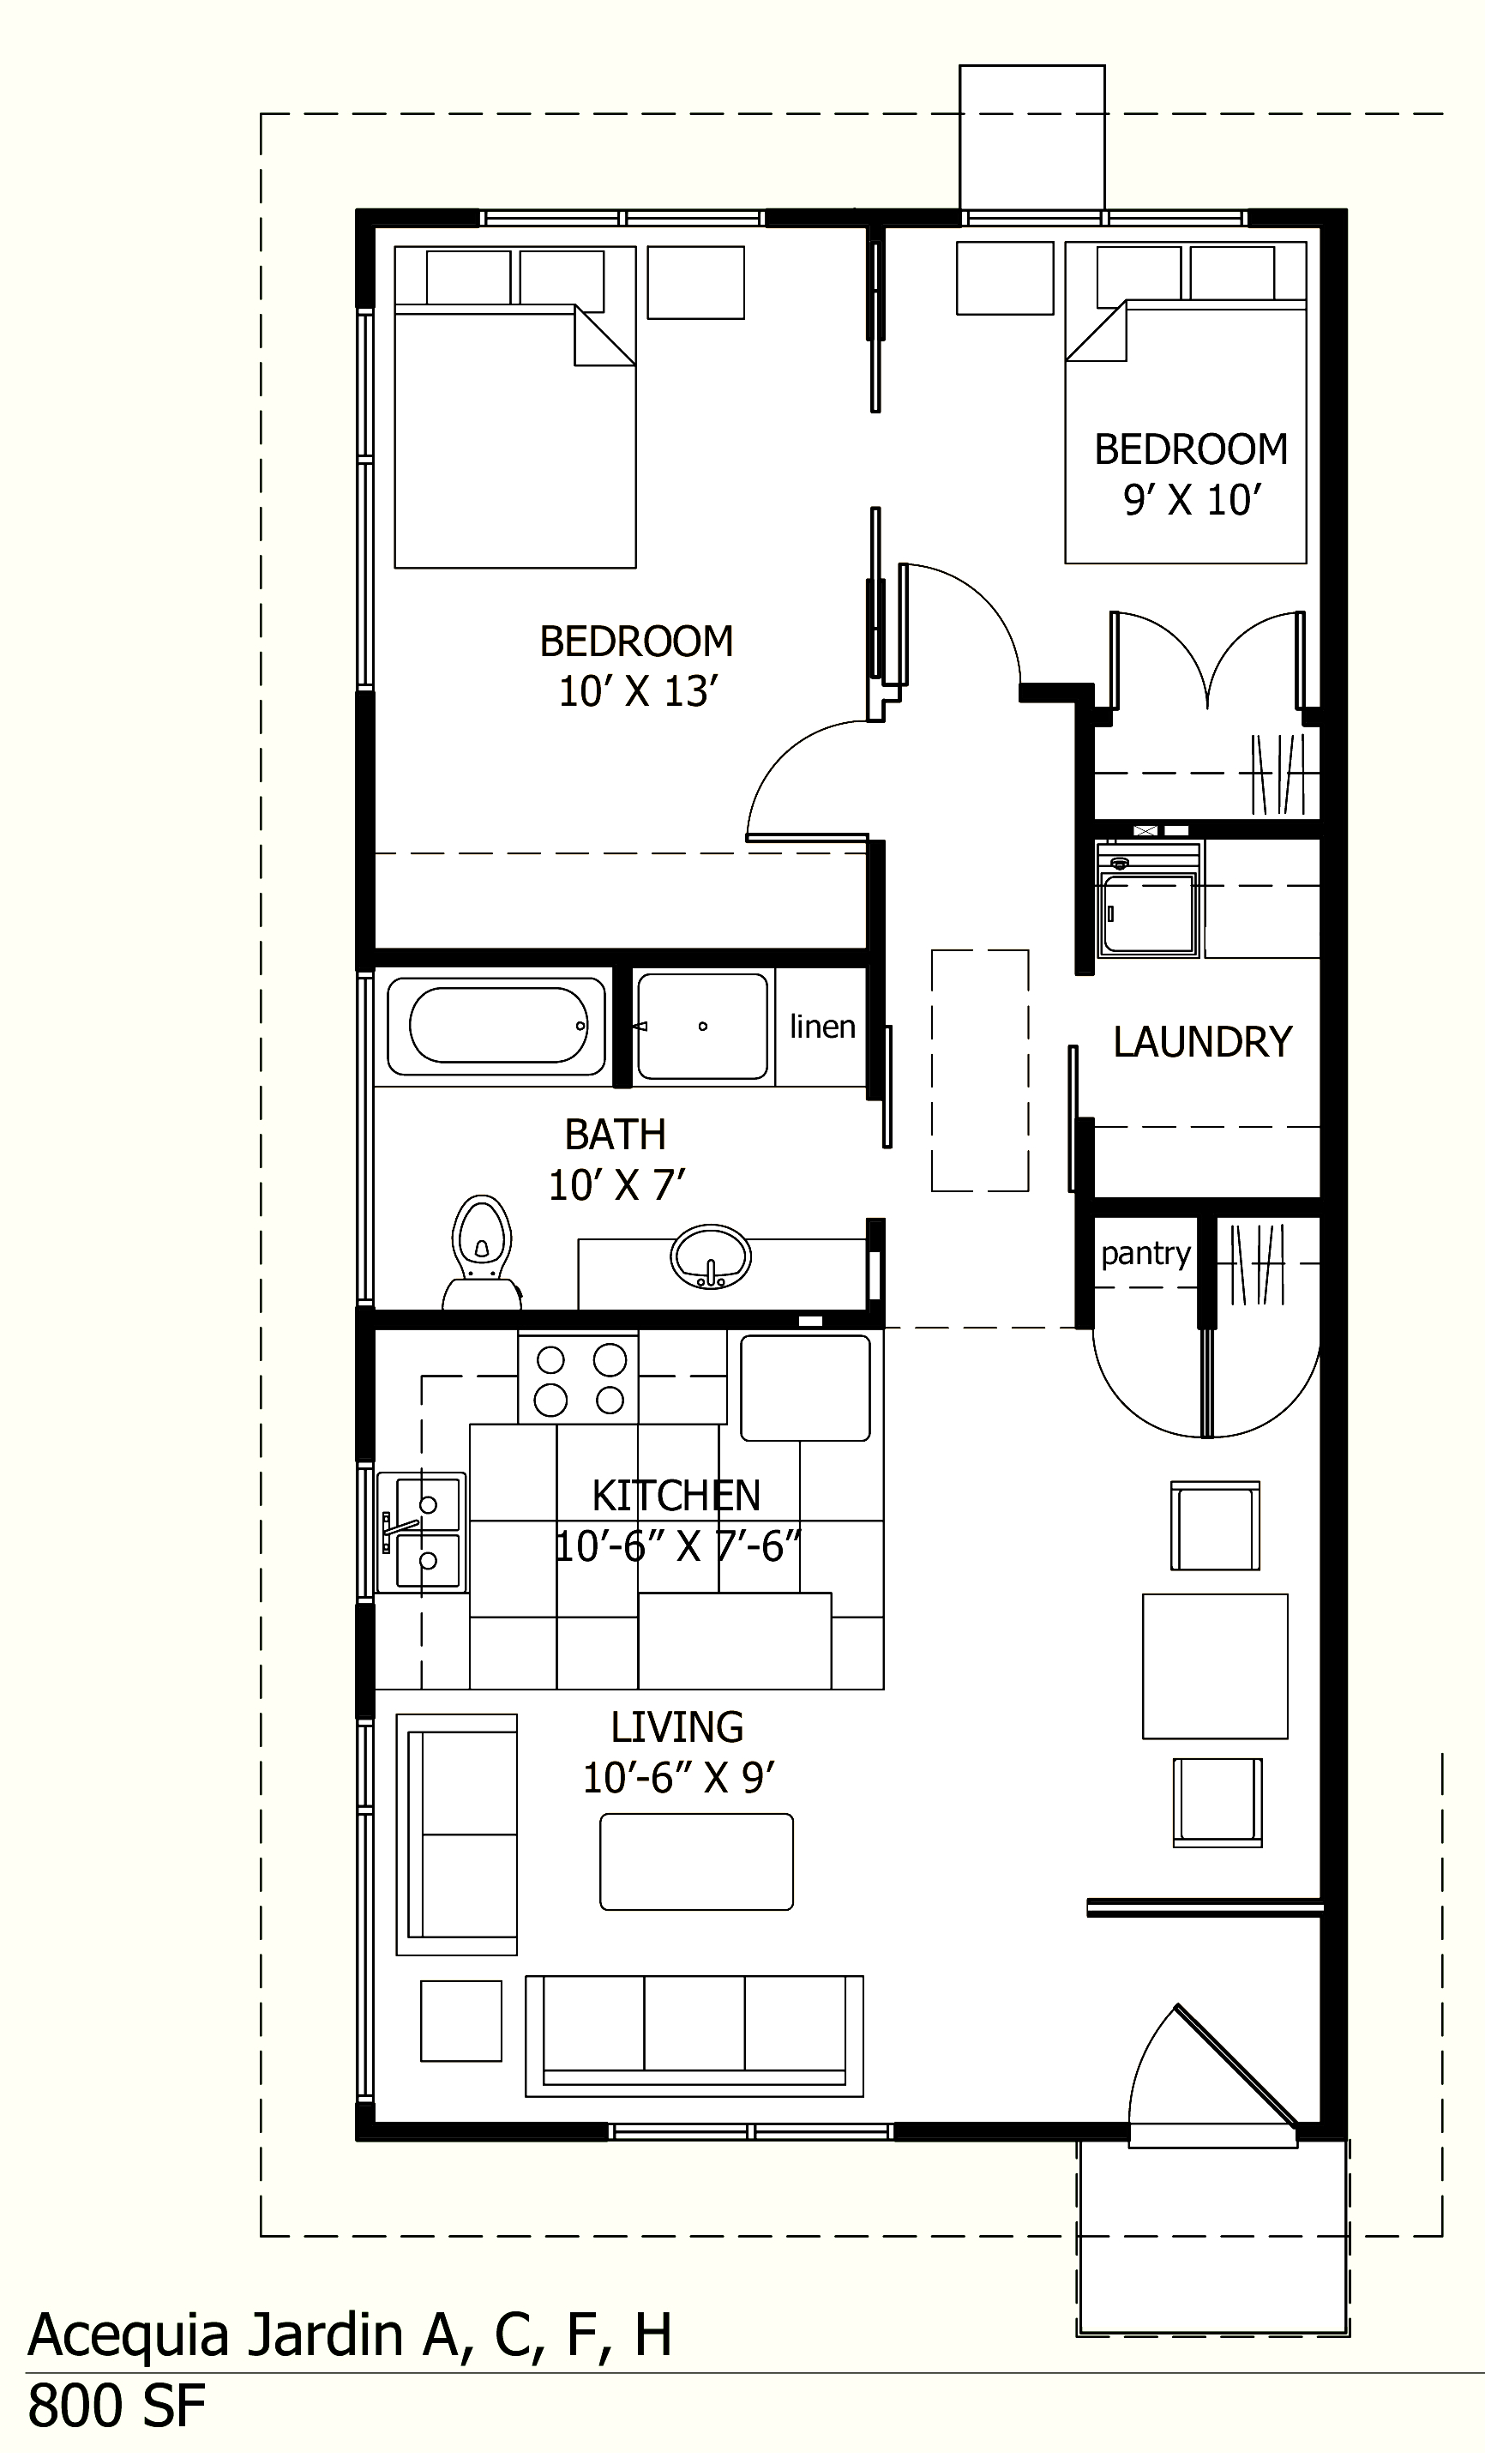 800 sq ft acequia jardin 800 square foot house plans images